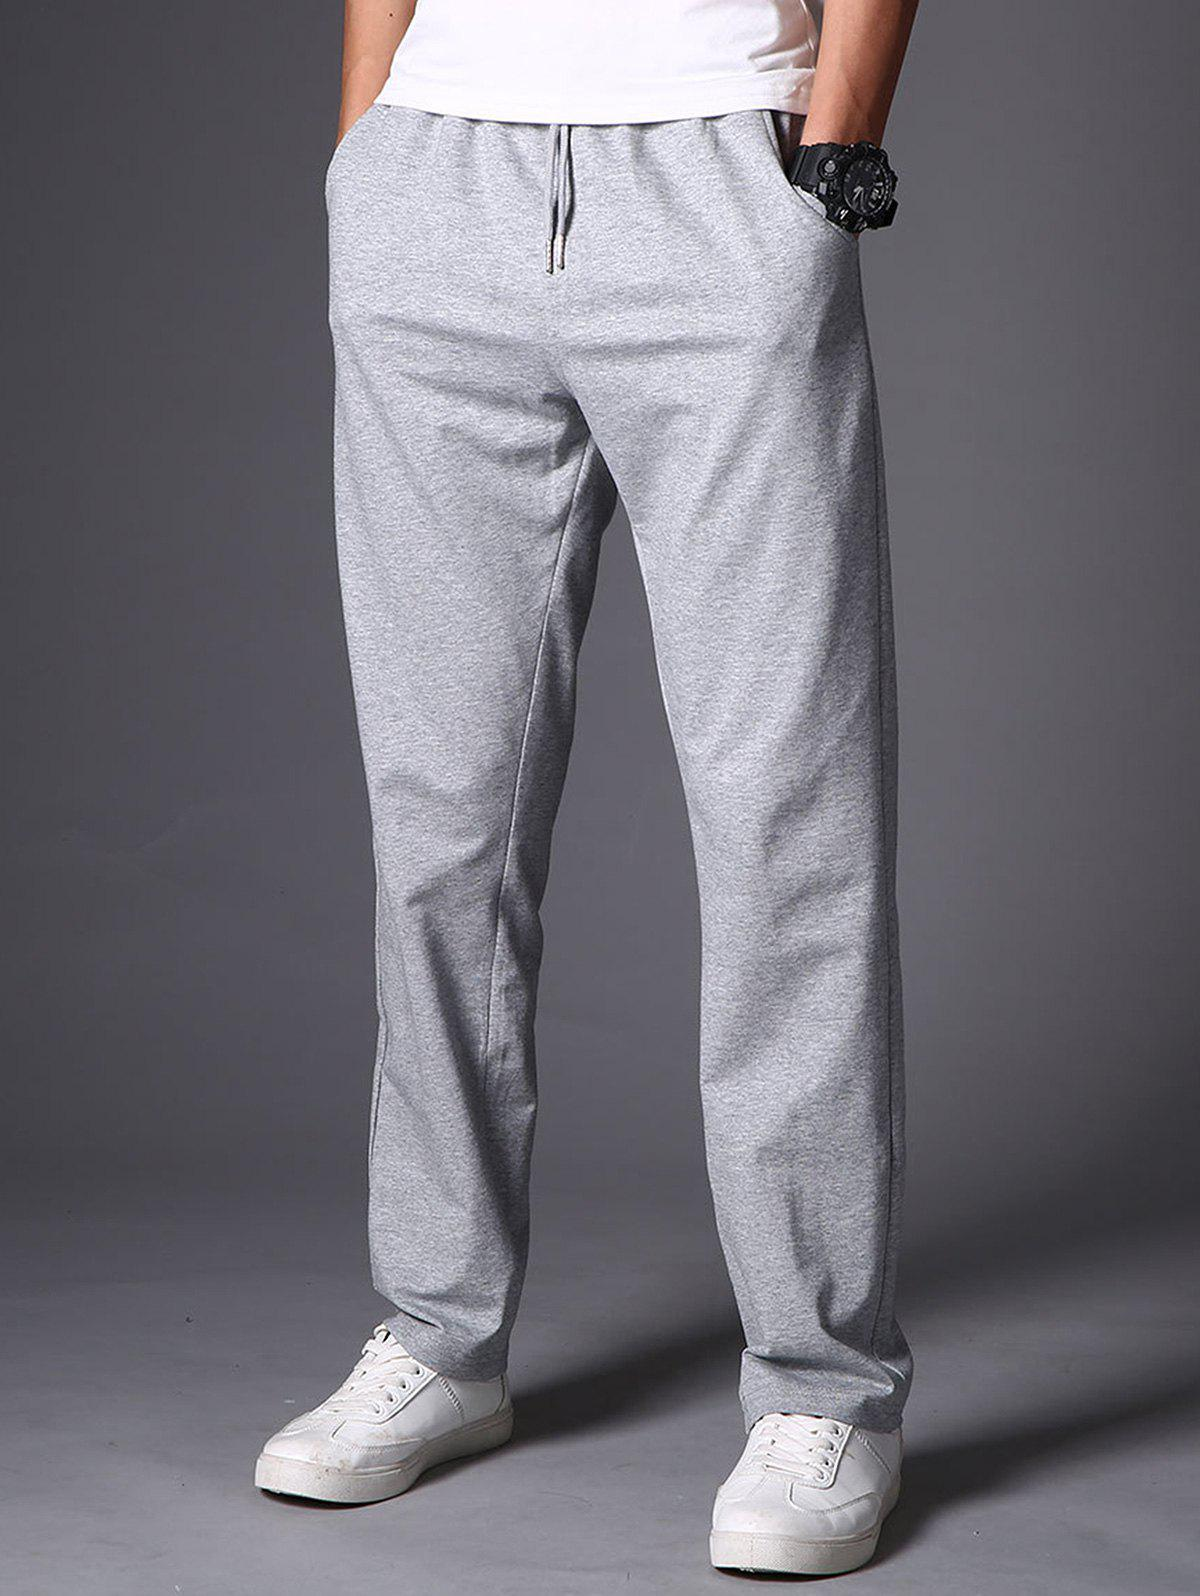 Store Drawstring Casual Straight Leg Sweatpants